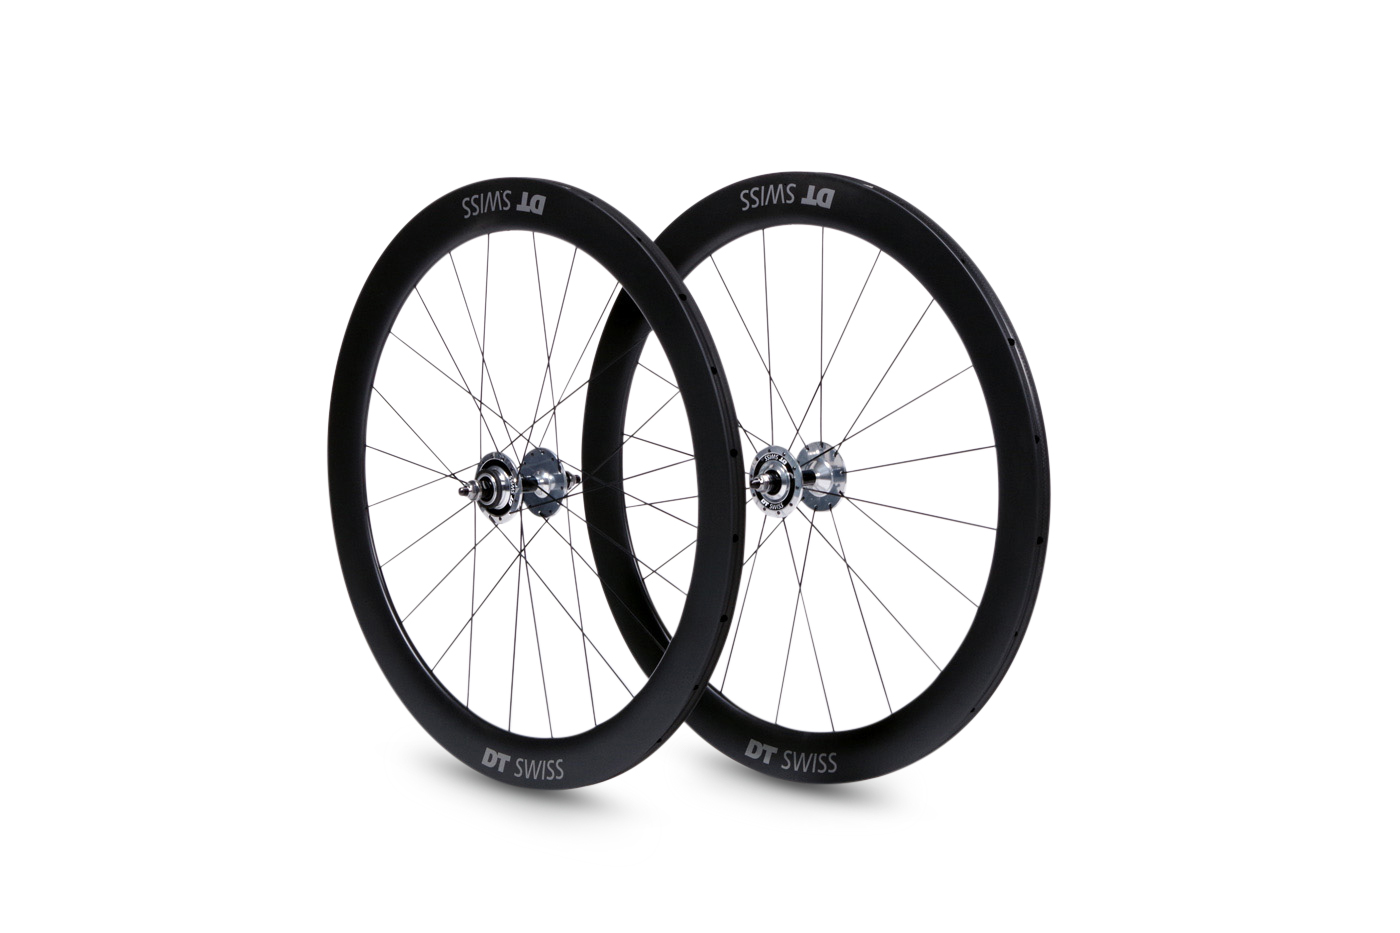 DT Swiss team 01 - DT Swiss wheels - Now available at 8bar bikes